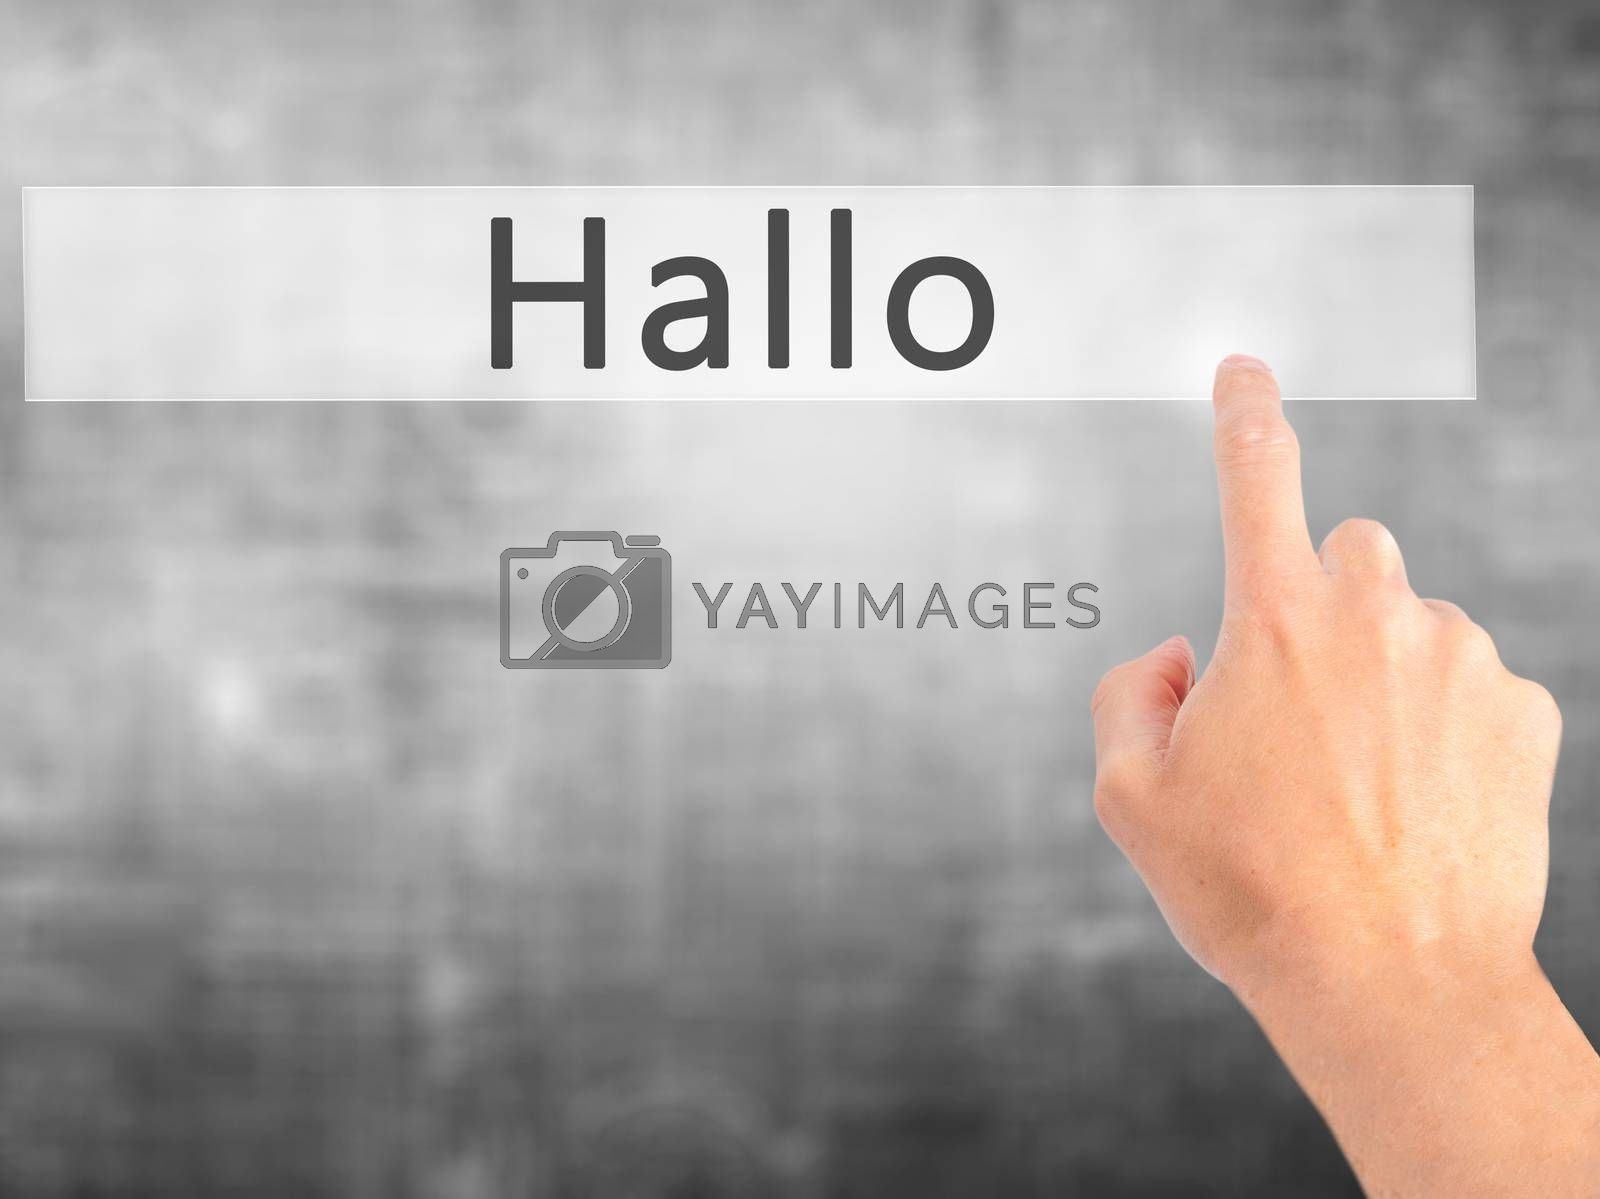 Hallo (Hello in German) - Hand pressing a button on blurred back by netsay.net